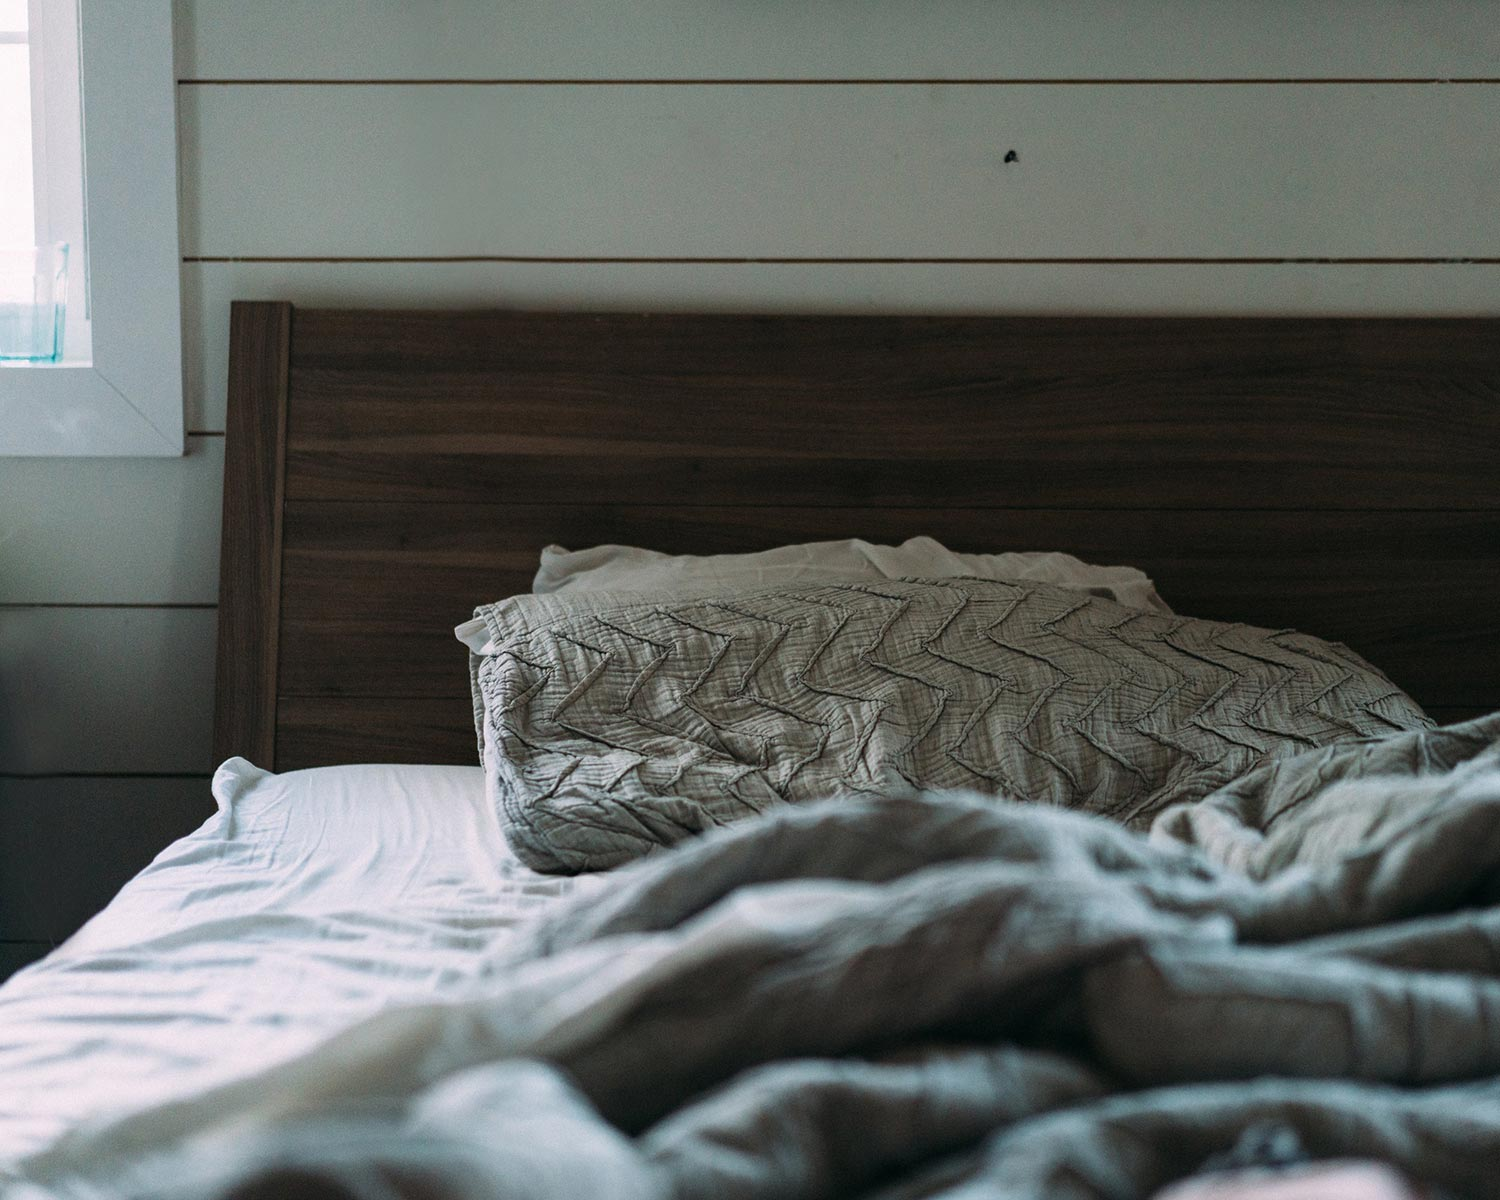 empty-bed-opiate-witjdrawal